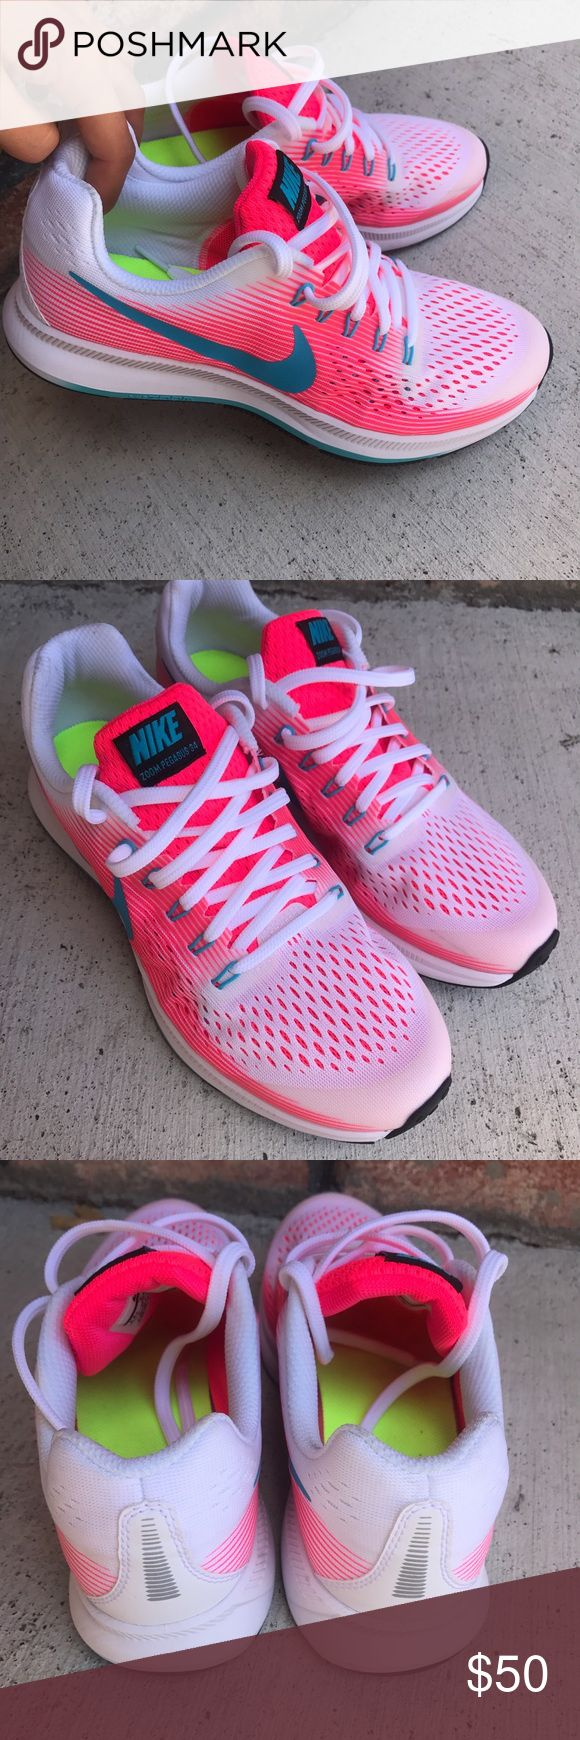 Brand new Nike Zoom Pegasus 34 Only worn once for a shoot! Kids 6.5 - Women's 8! Nike Shoes Sneakers